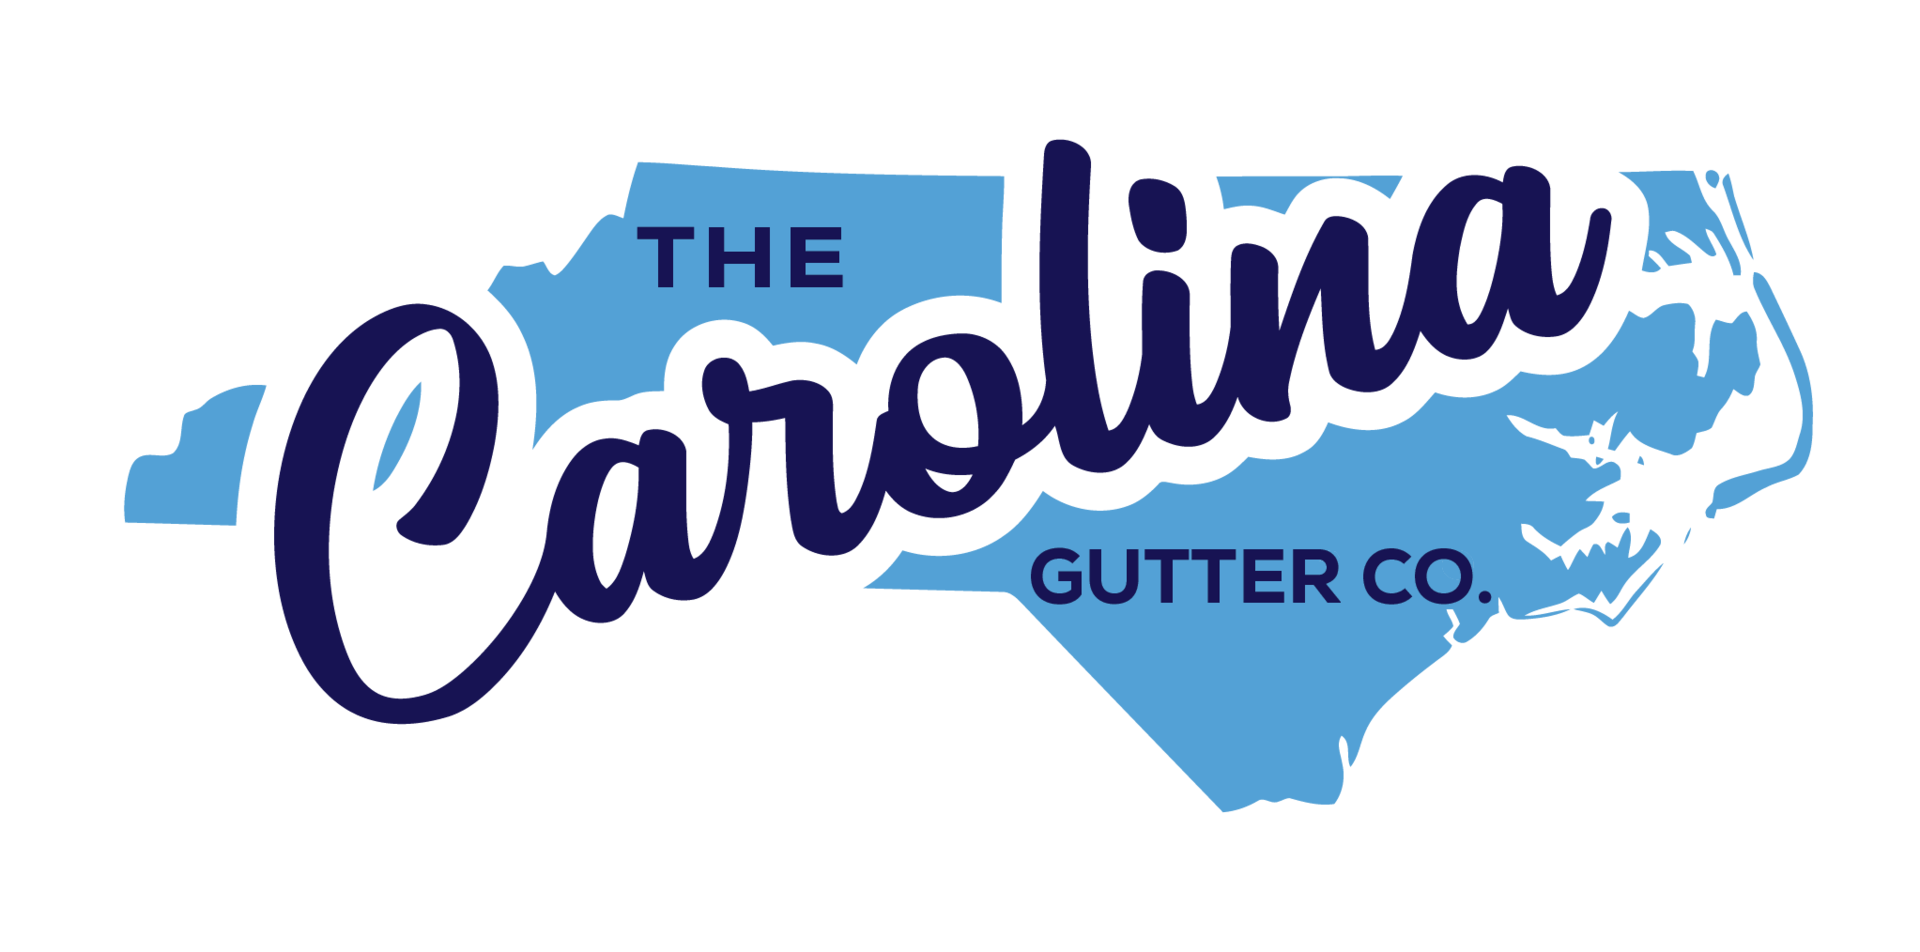 carolina gutter co logo